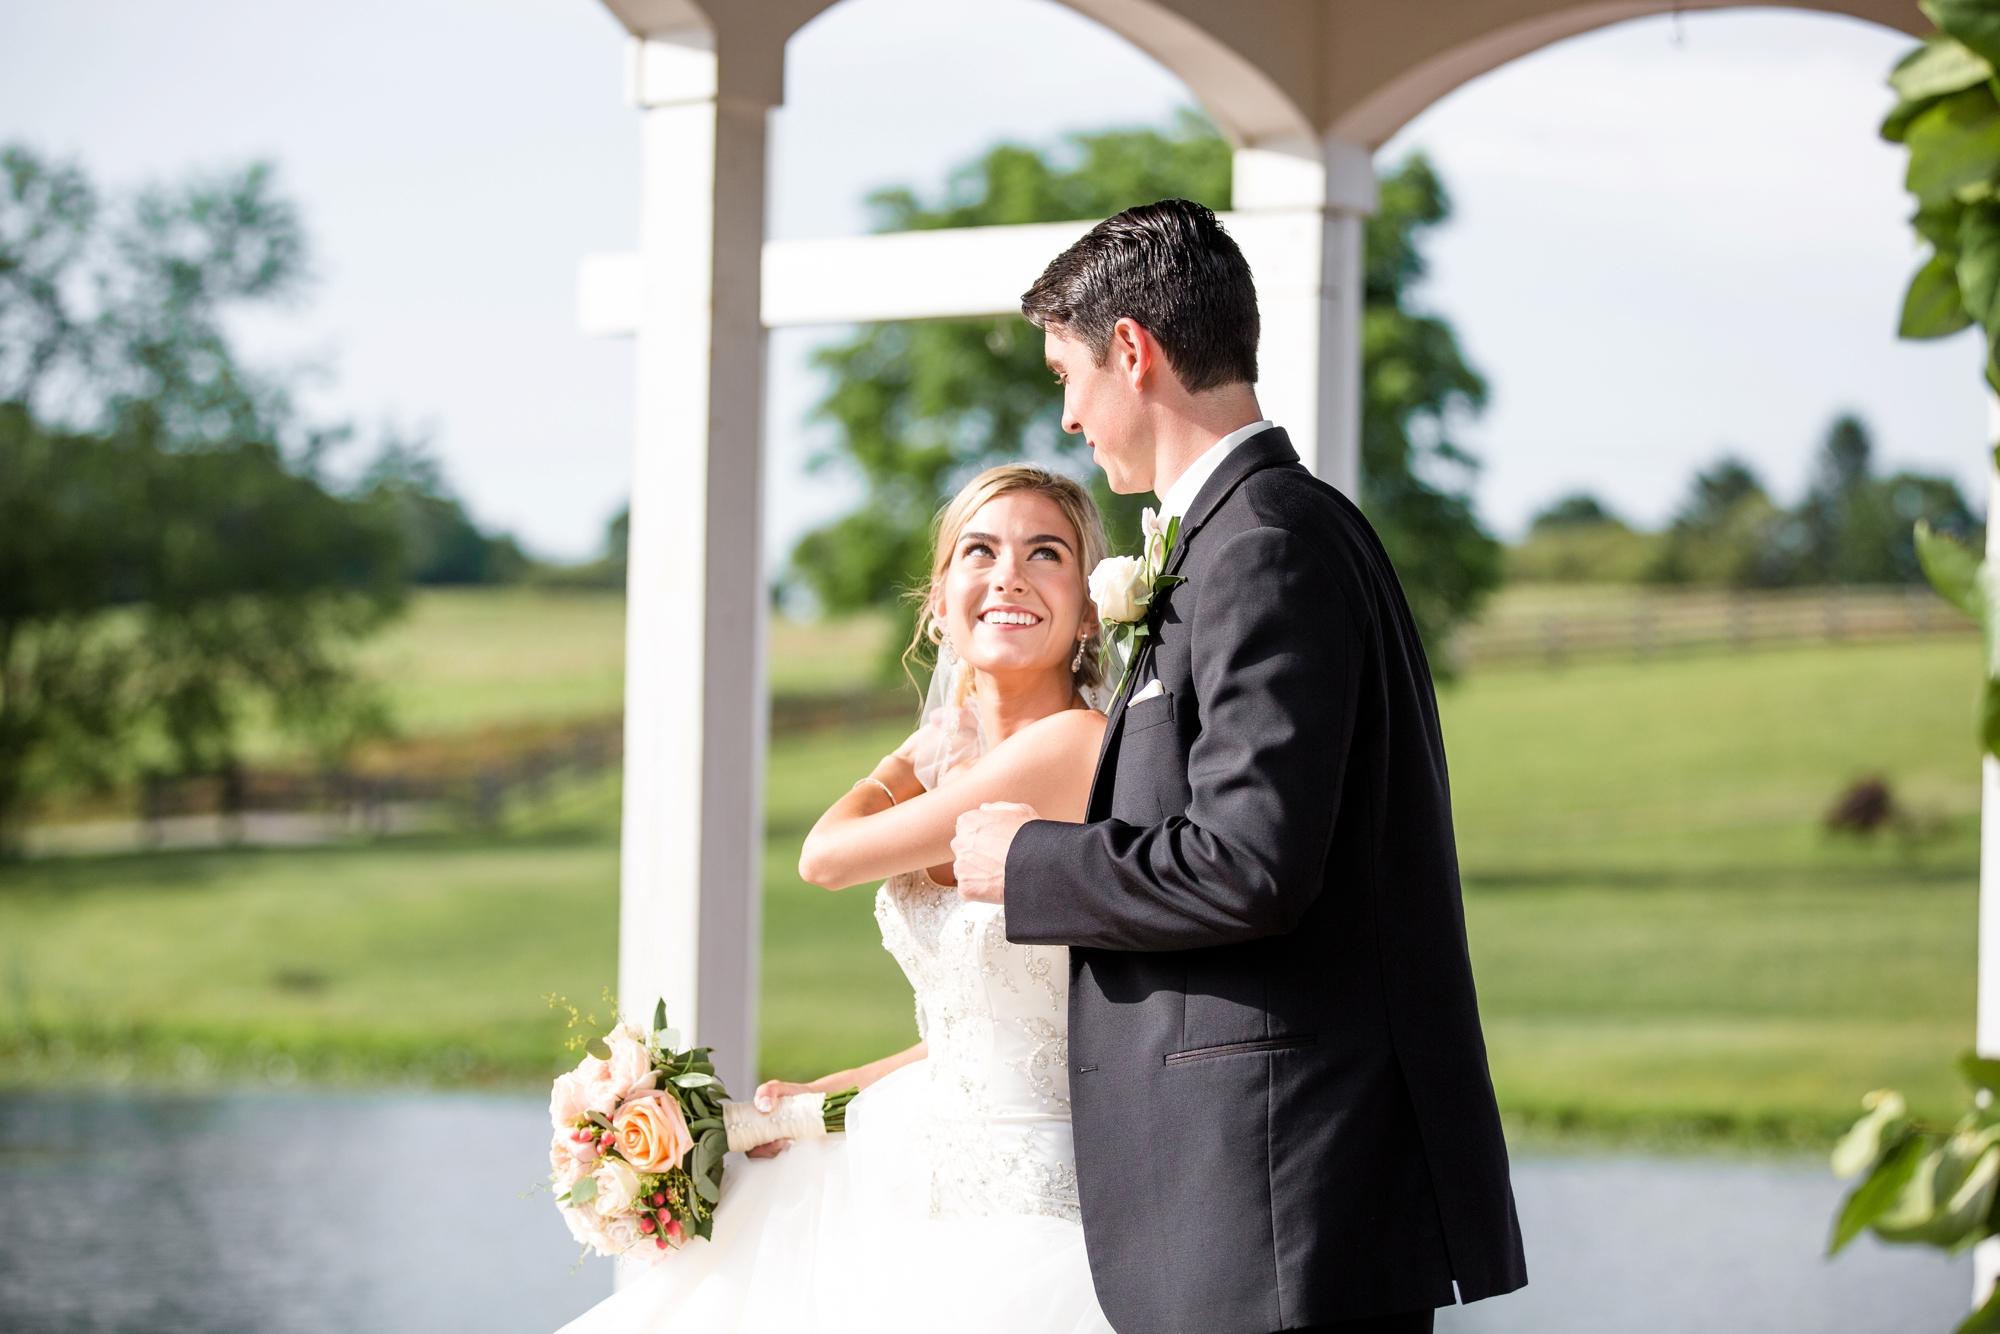 pittsburgh wedding photographer, lingrow farm wedding, lingrow farms wedding photographer, renaissance pittsburgh hotel wedding, cranberry township wedding photographer, leechburg wedding photographer